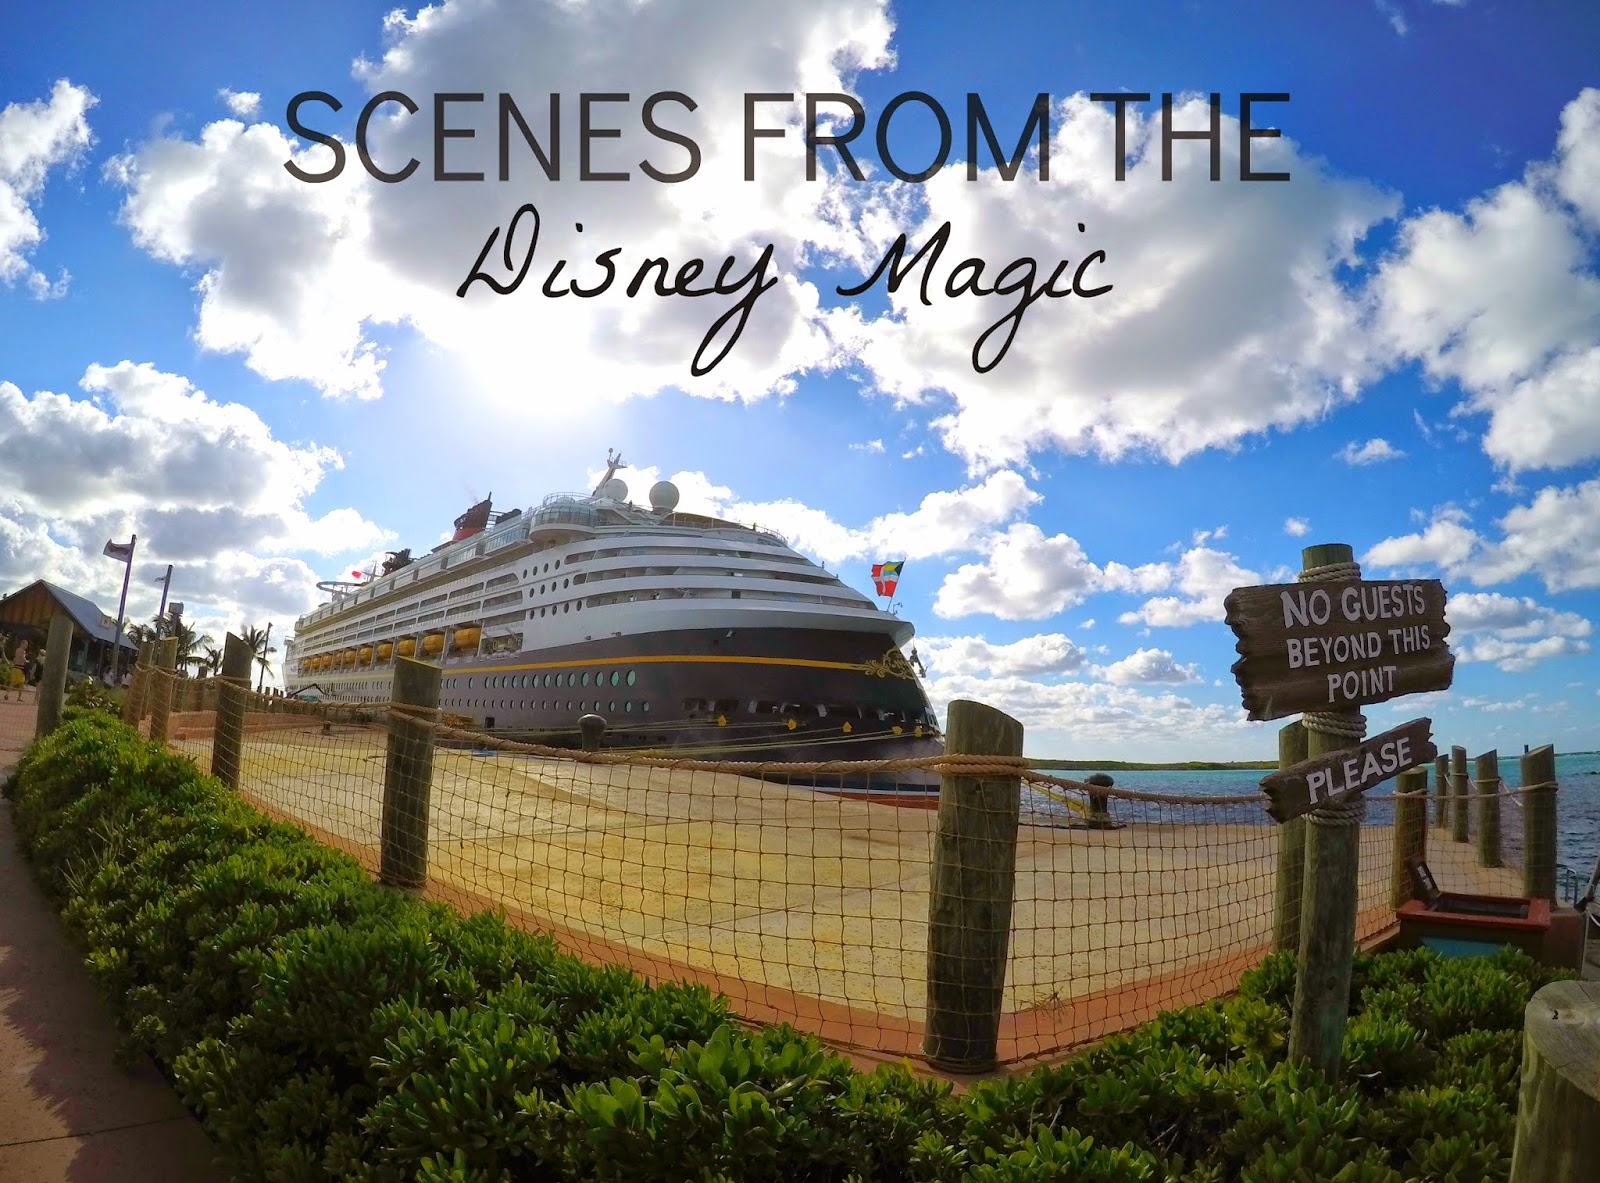 Photos of the Disney Magic Cruise Ship